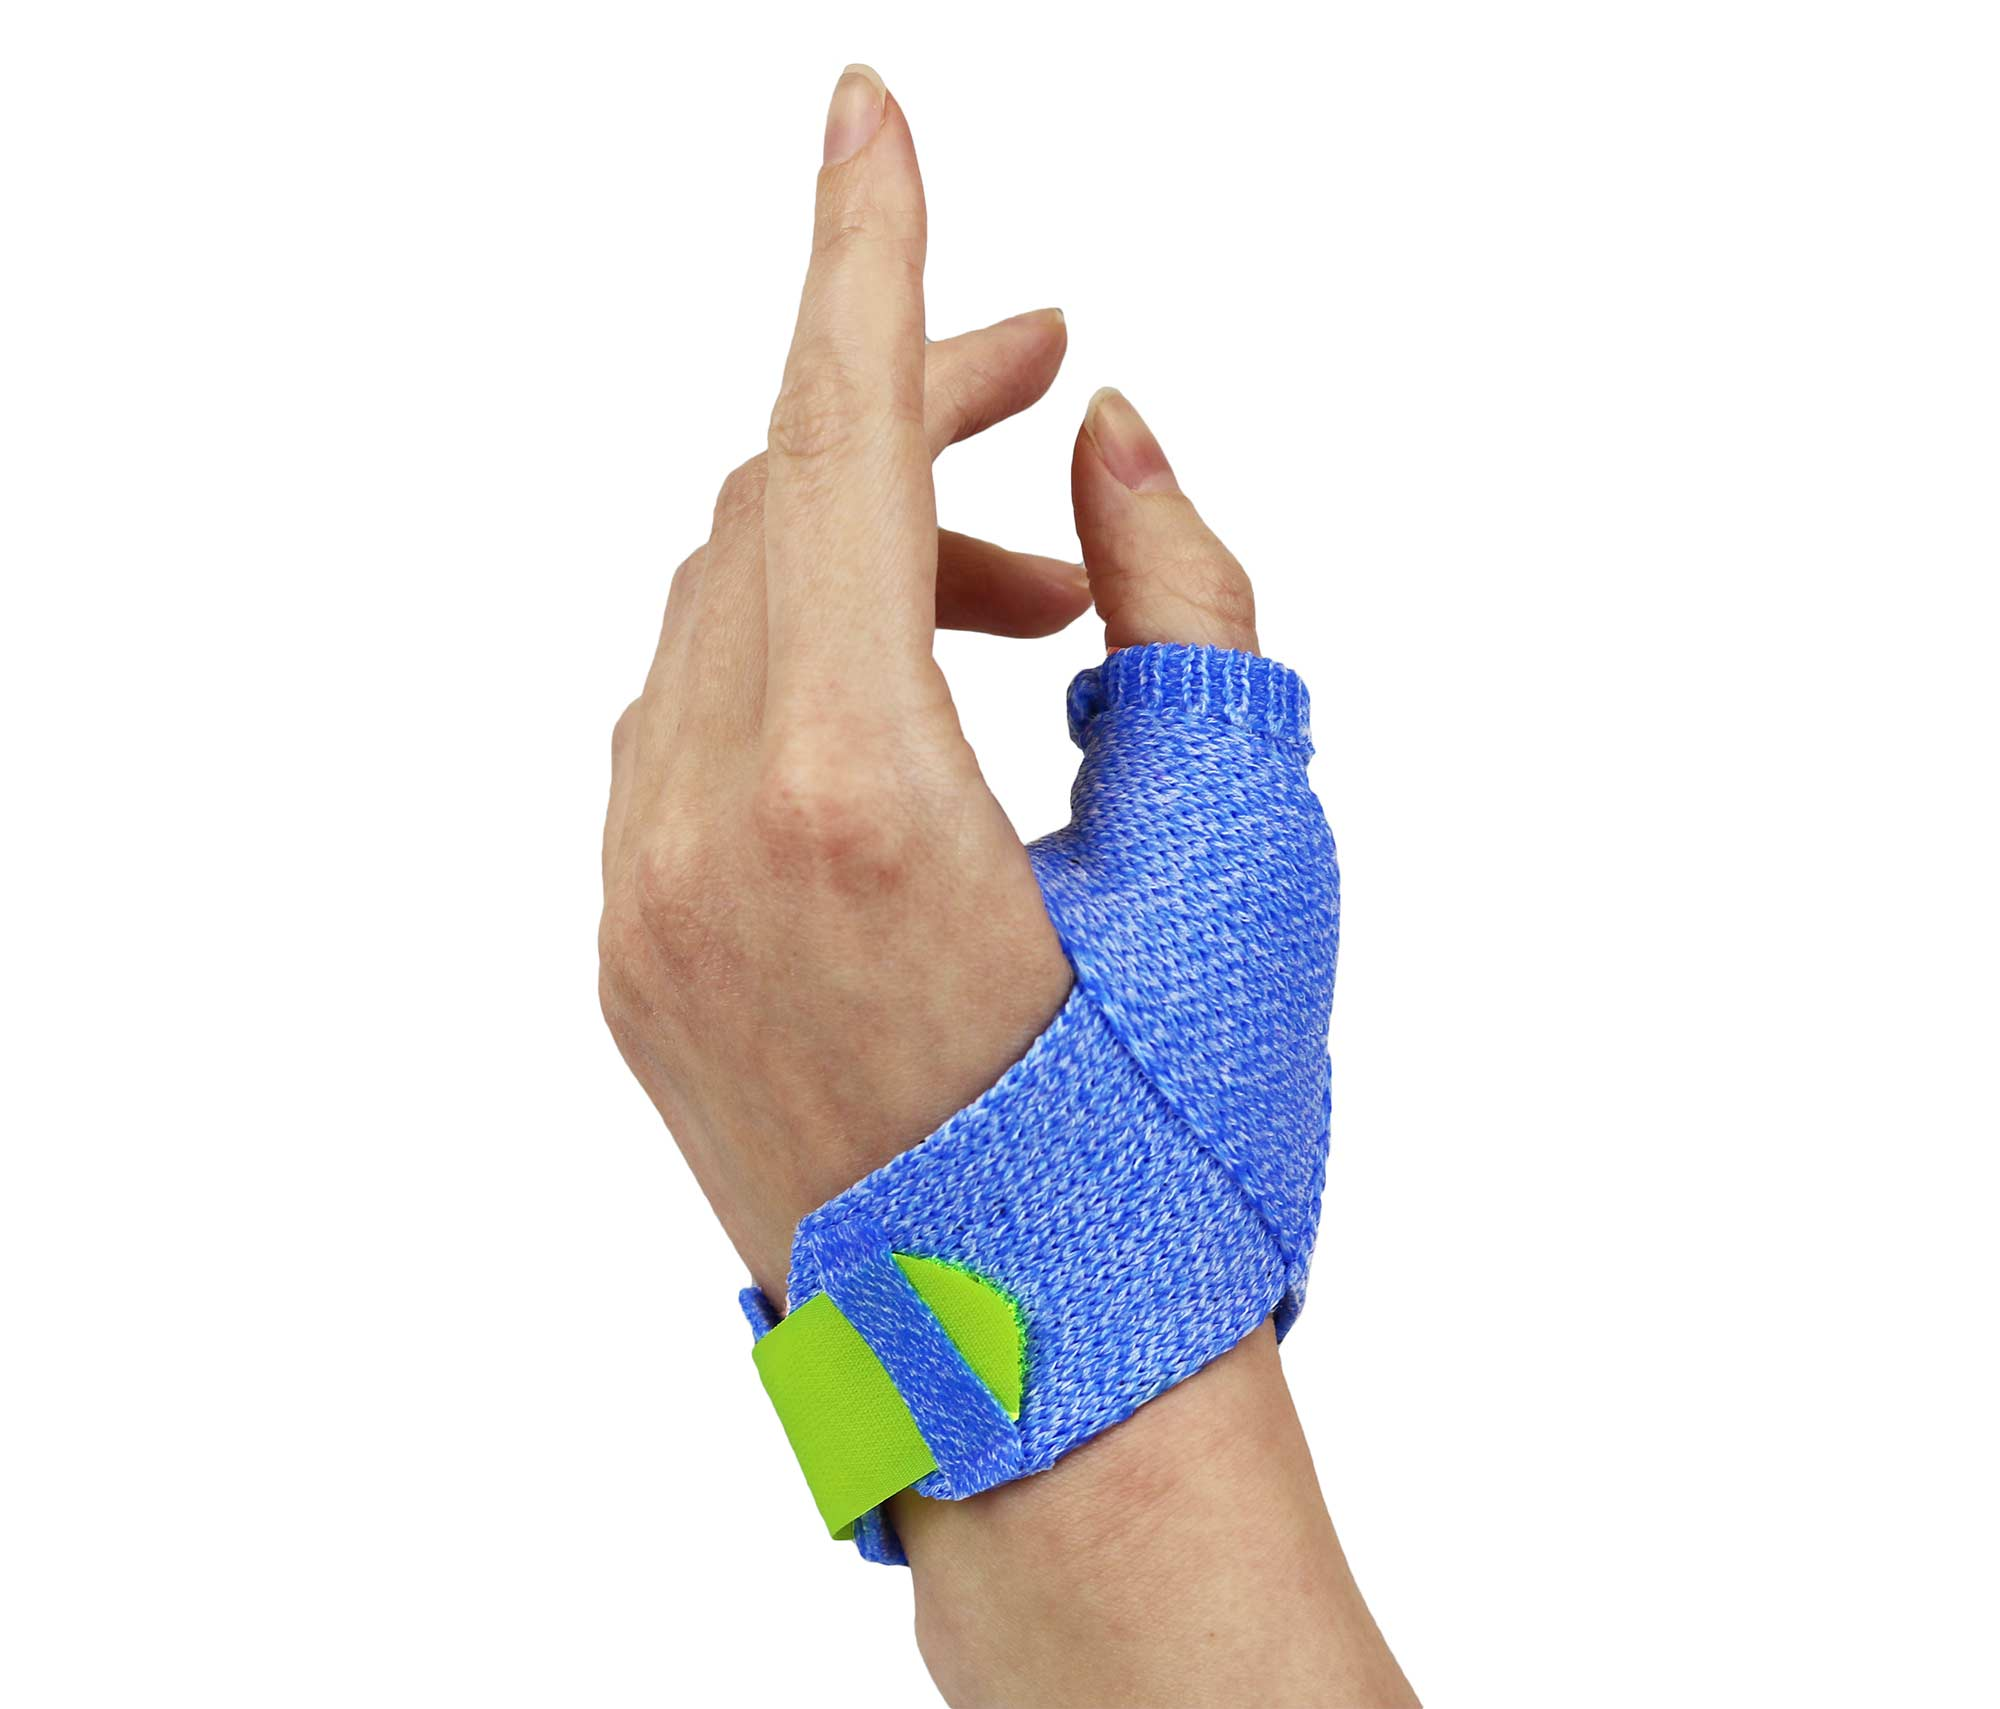 Blue Orficast orthosis with yellow hook-and-loop strapping